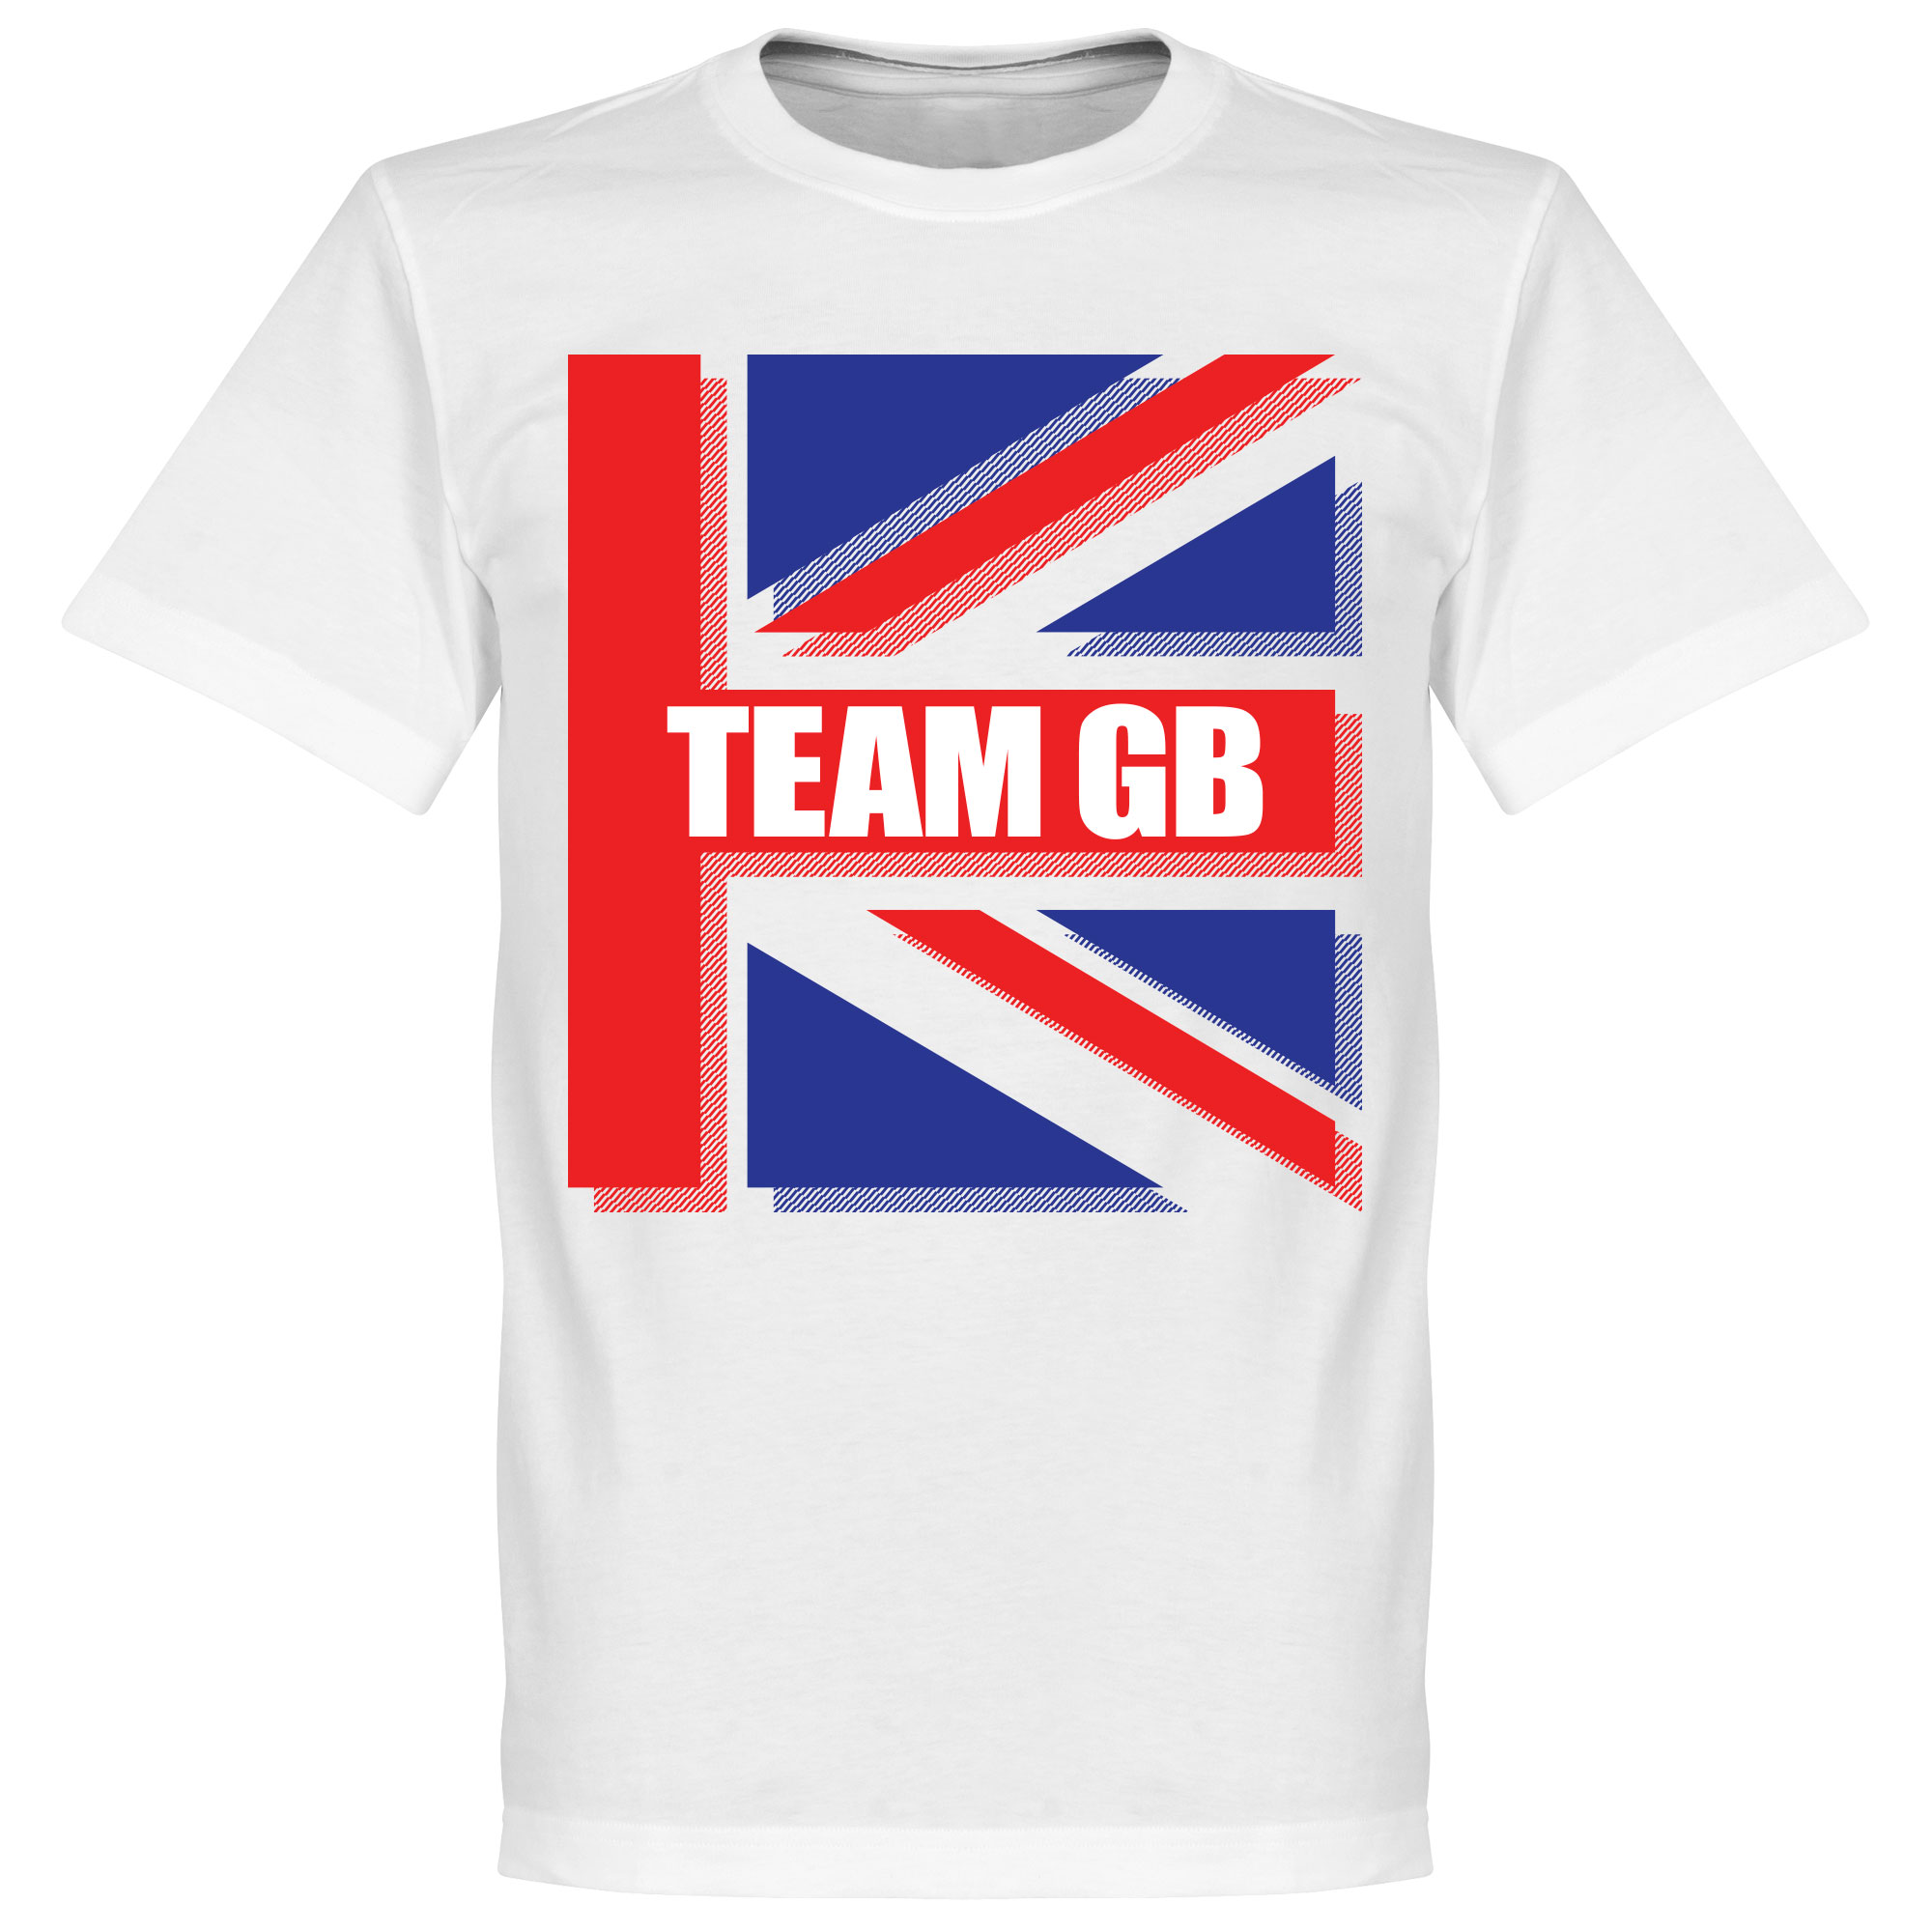 Team GB Tee - White - XXXXL